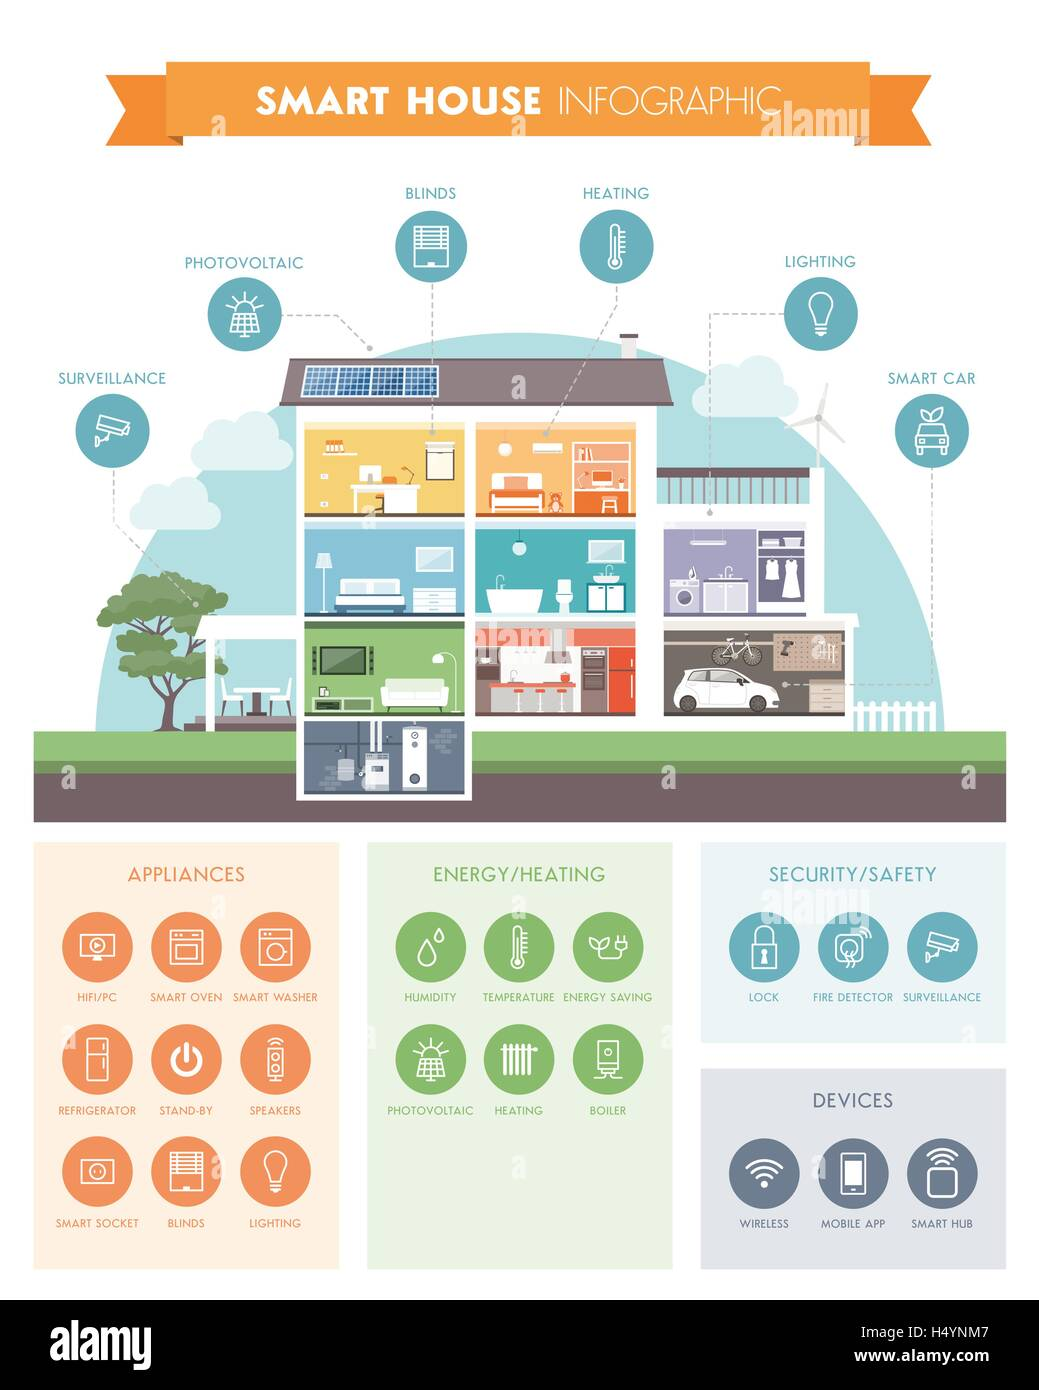 Smart House smart house system automation infographic modern building with